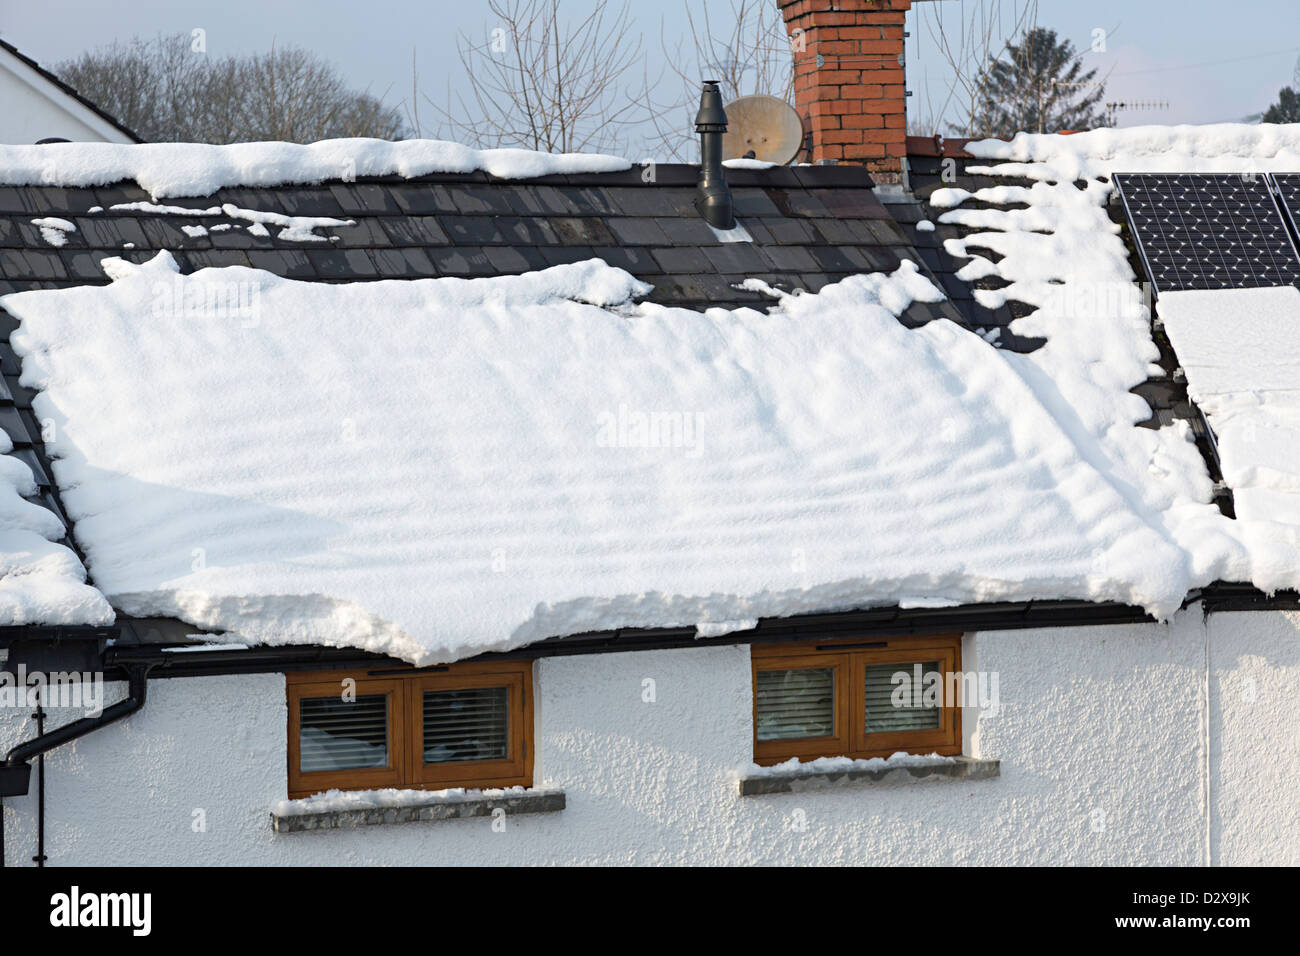 Exceptional Snow Sliding Off Tiled Roof And Putting Weight Onto Gutters Of House,  Llanfoist, Wales, UK